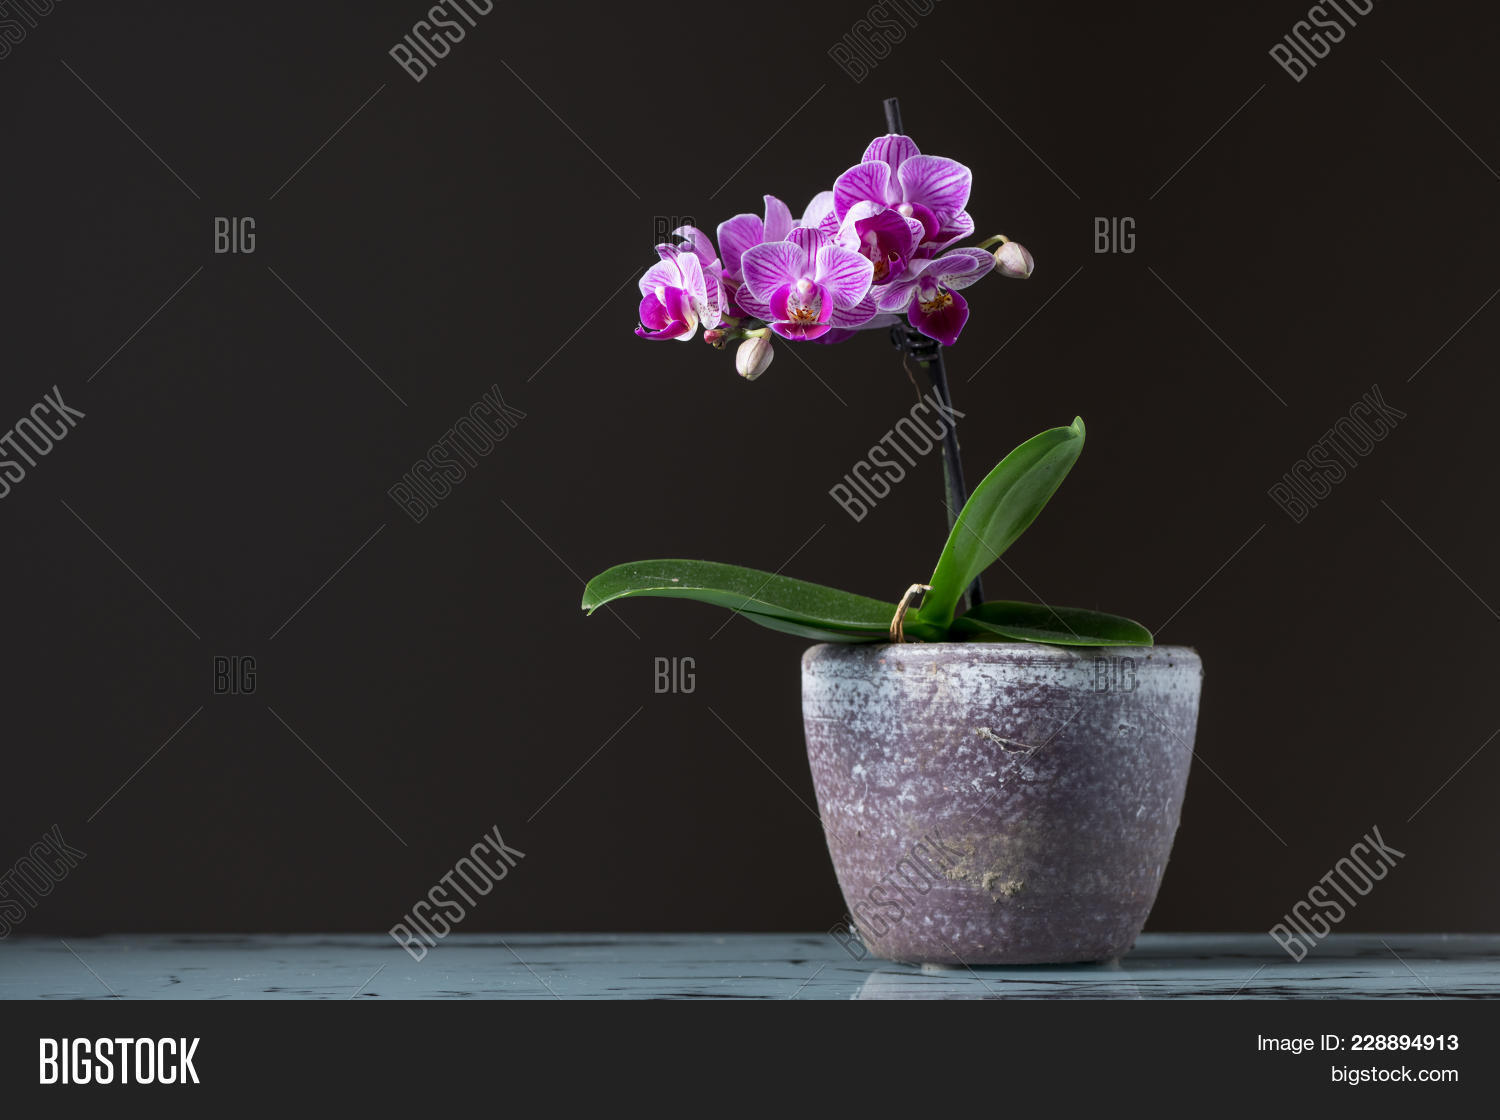 Small Pink Orchid Image Photo Free Trial Bigstock